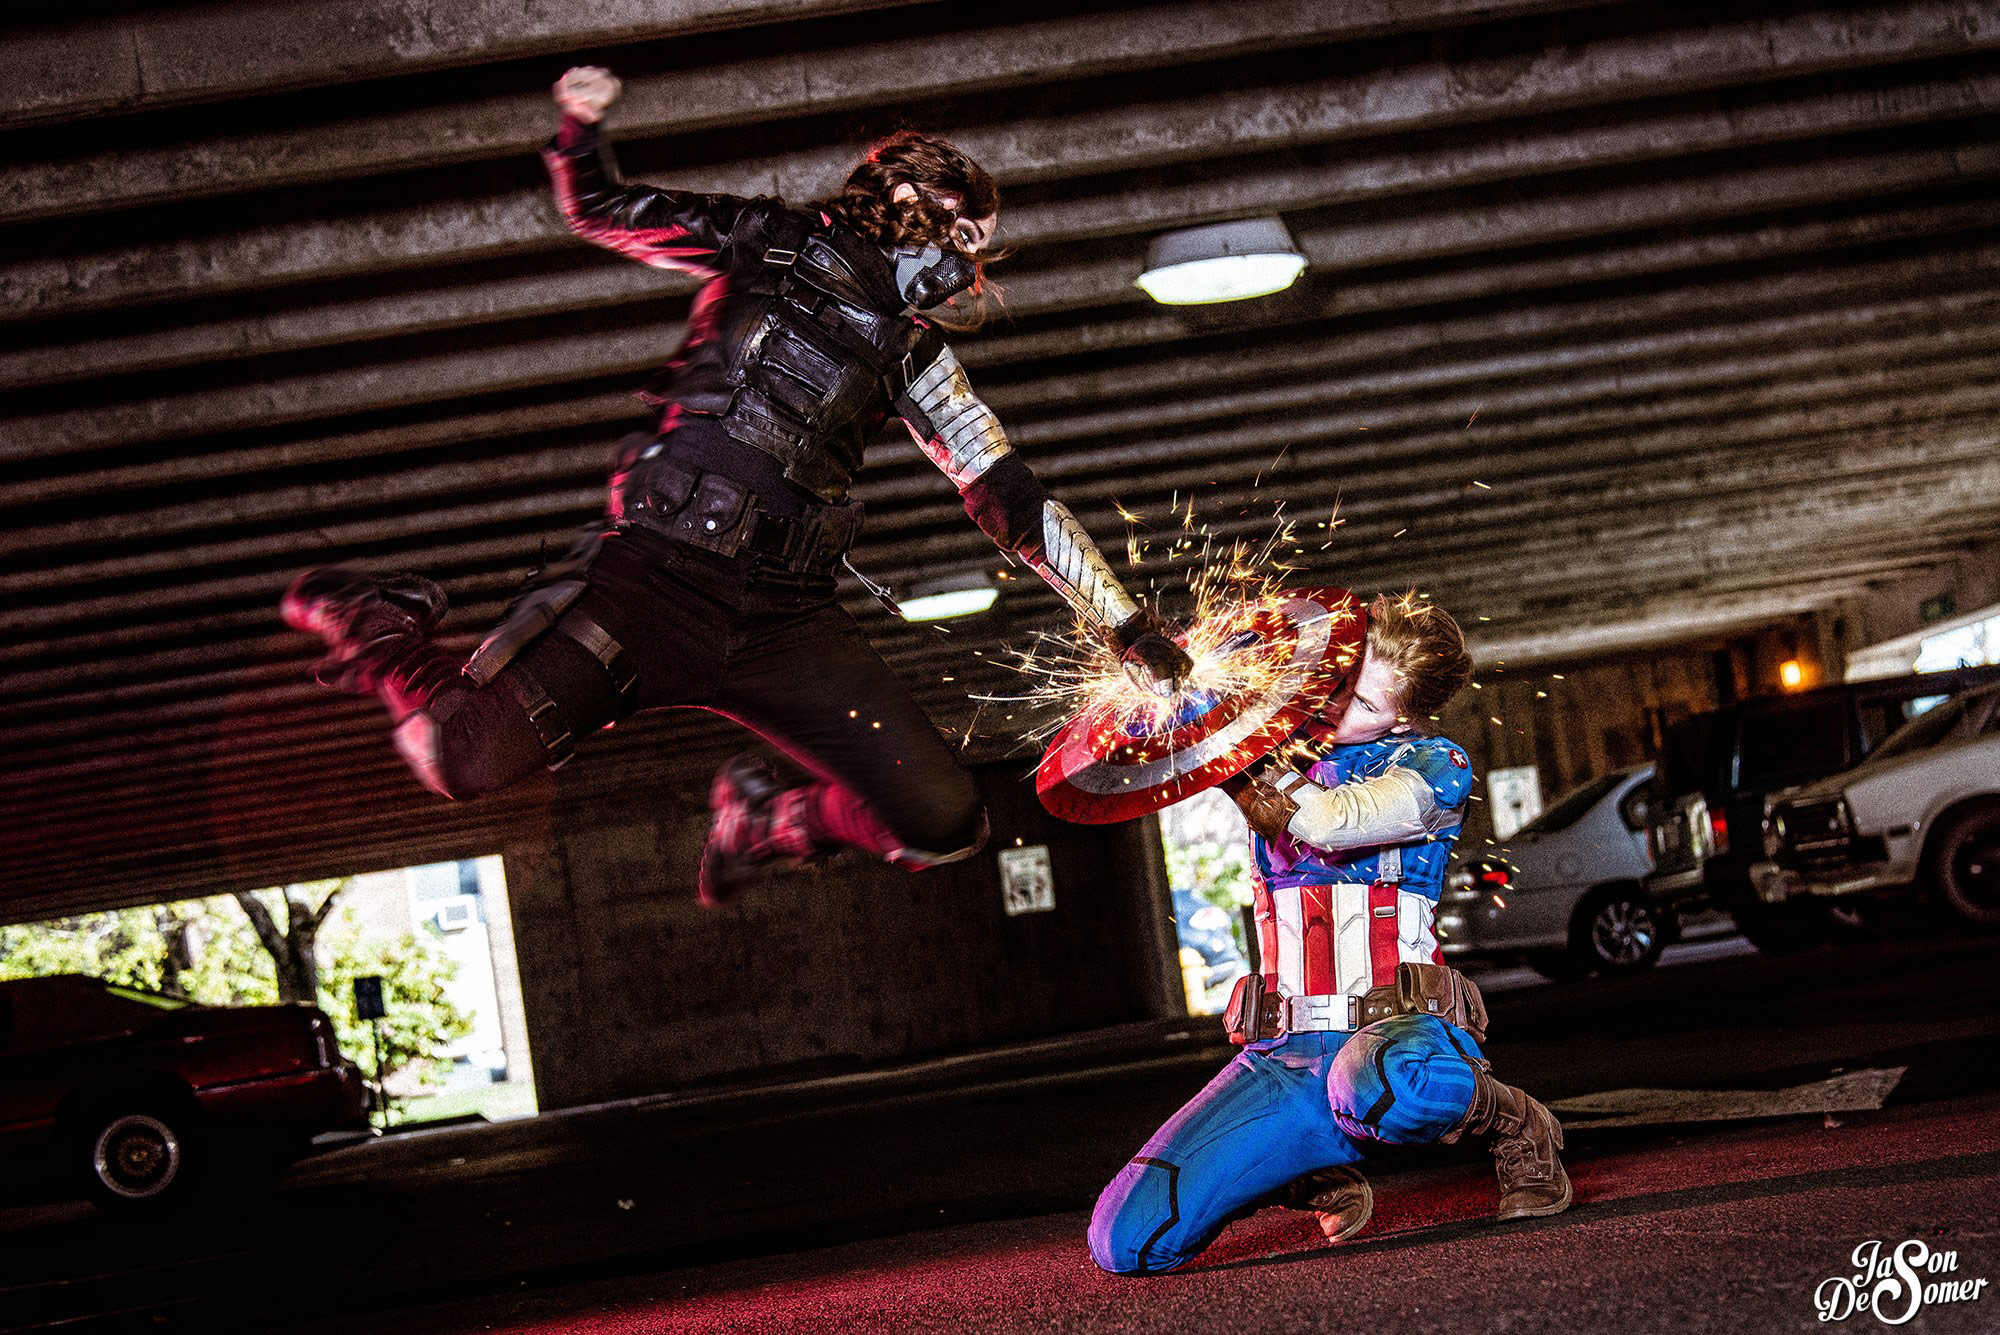 Jason DeSomer cosplay photography 12 out of 12 image gallery